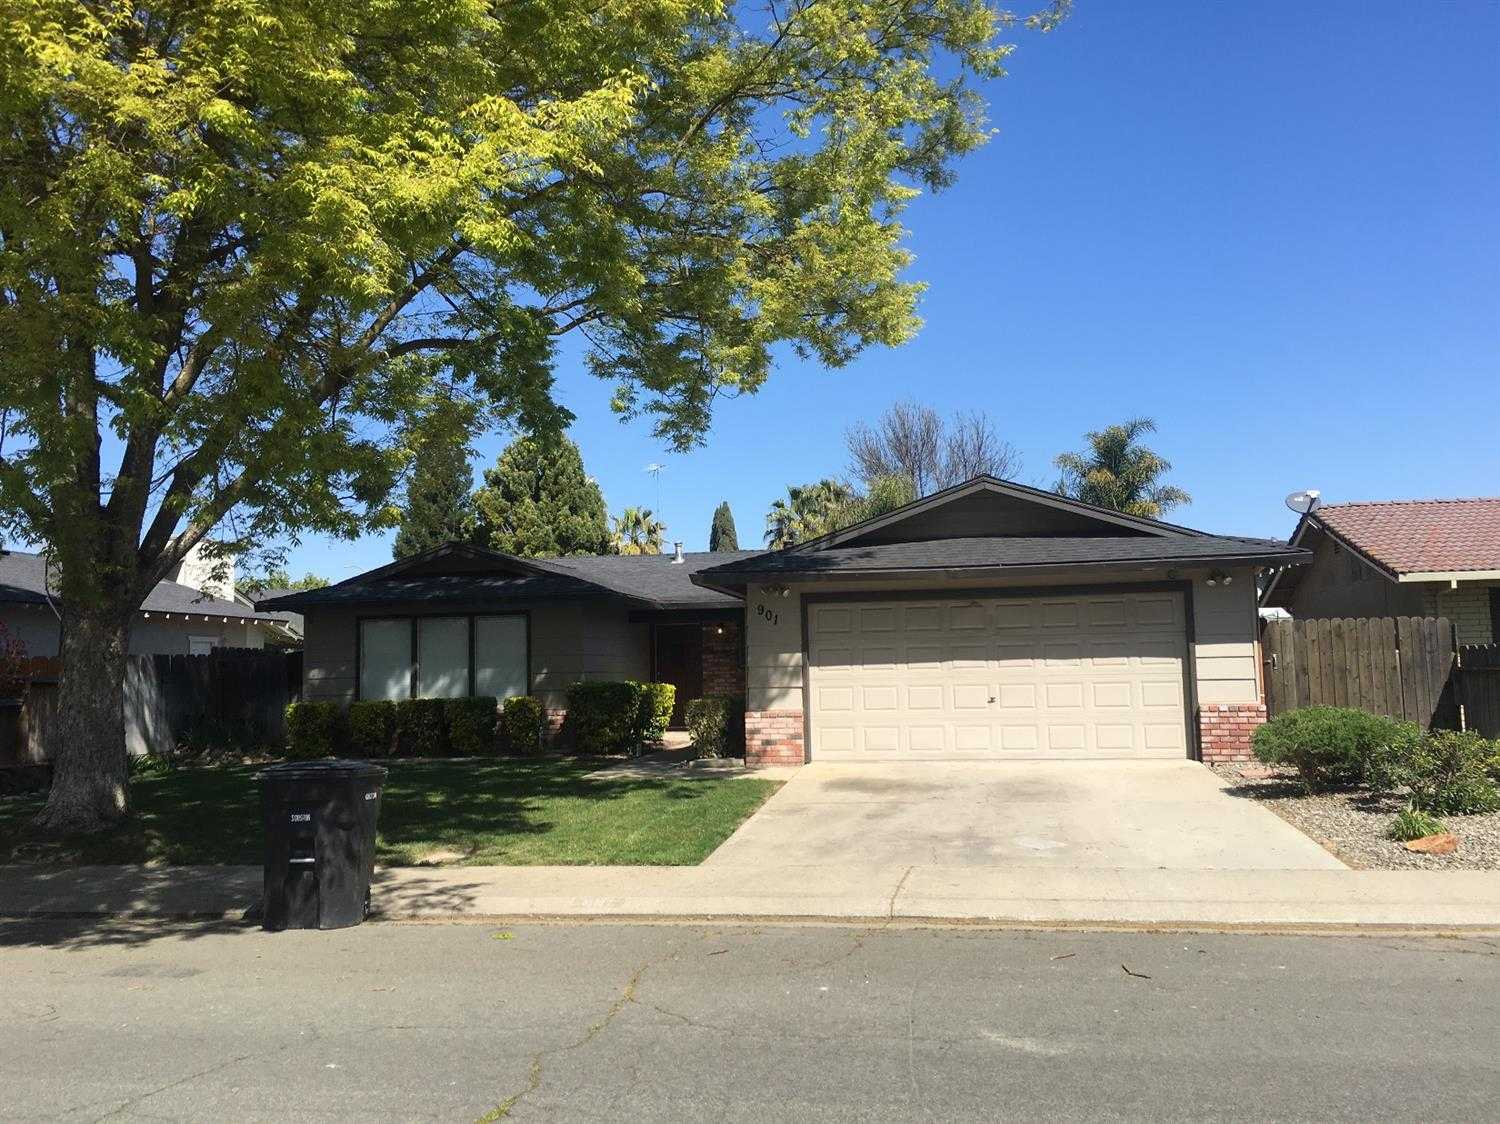 $295,000 - 3Br/2Ba -  for Sale in Wesson Estates 03, Modesto